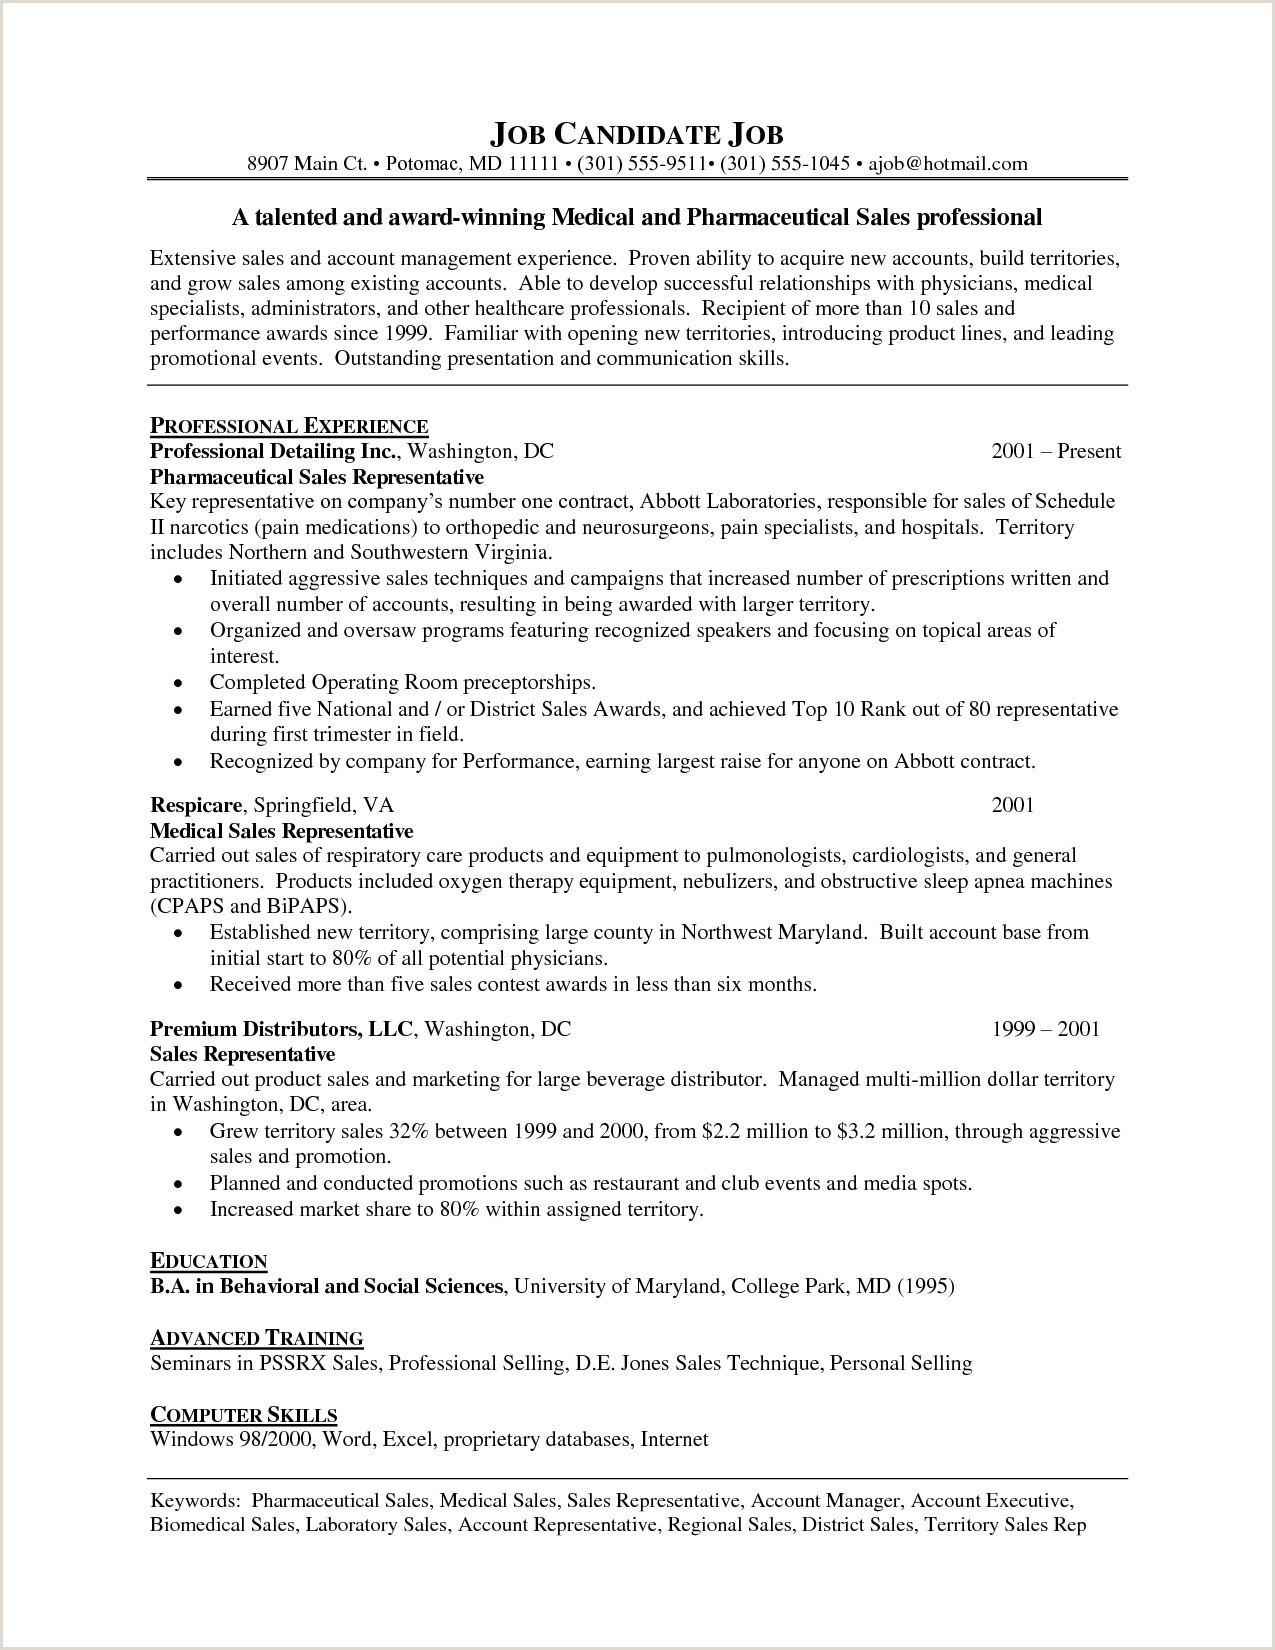 Cv format for Pharmaceutical Job Pharma Sales Resume Examples New Elegant Pharmaceutical